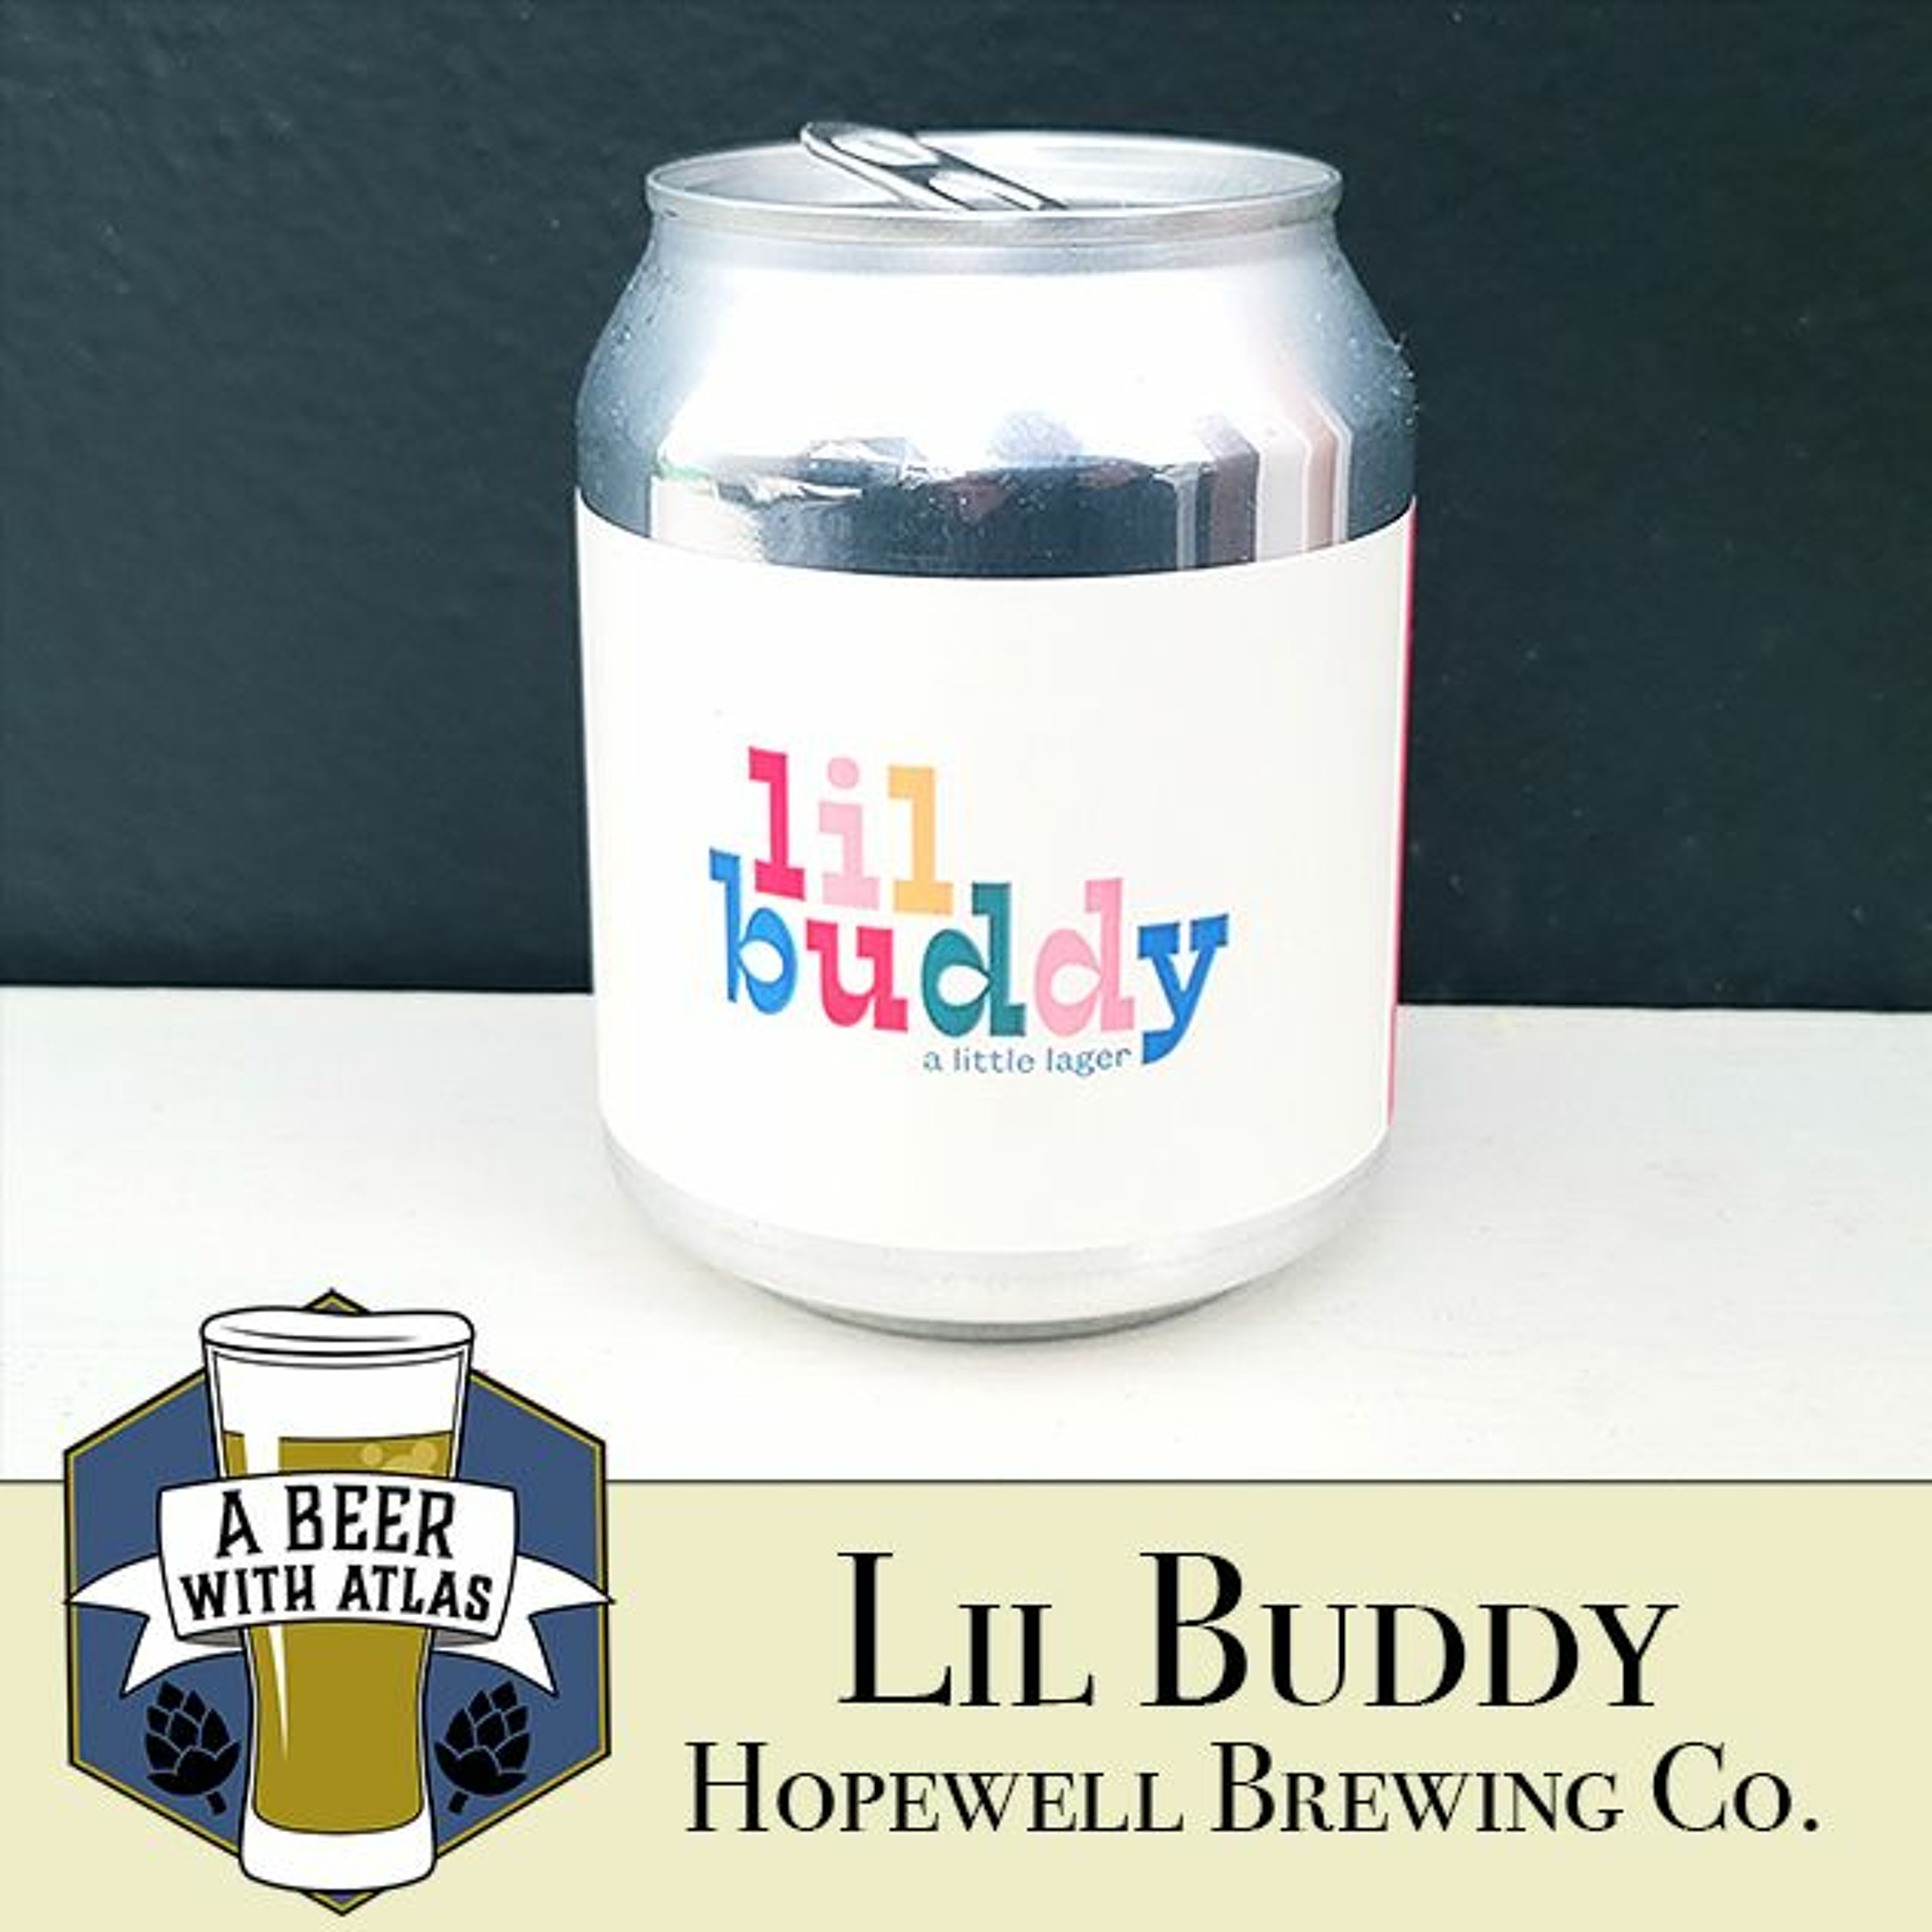 Lil Buddy little lager, Hopewell Brewing Co - Beer With Atlas 128 - travel nurse craft beer podcast